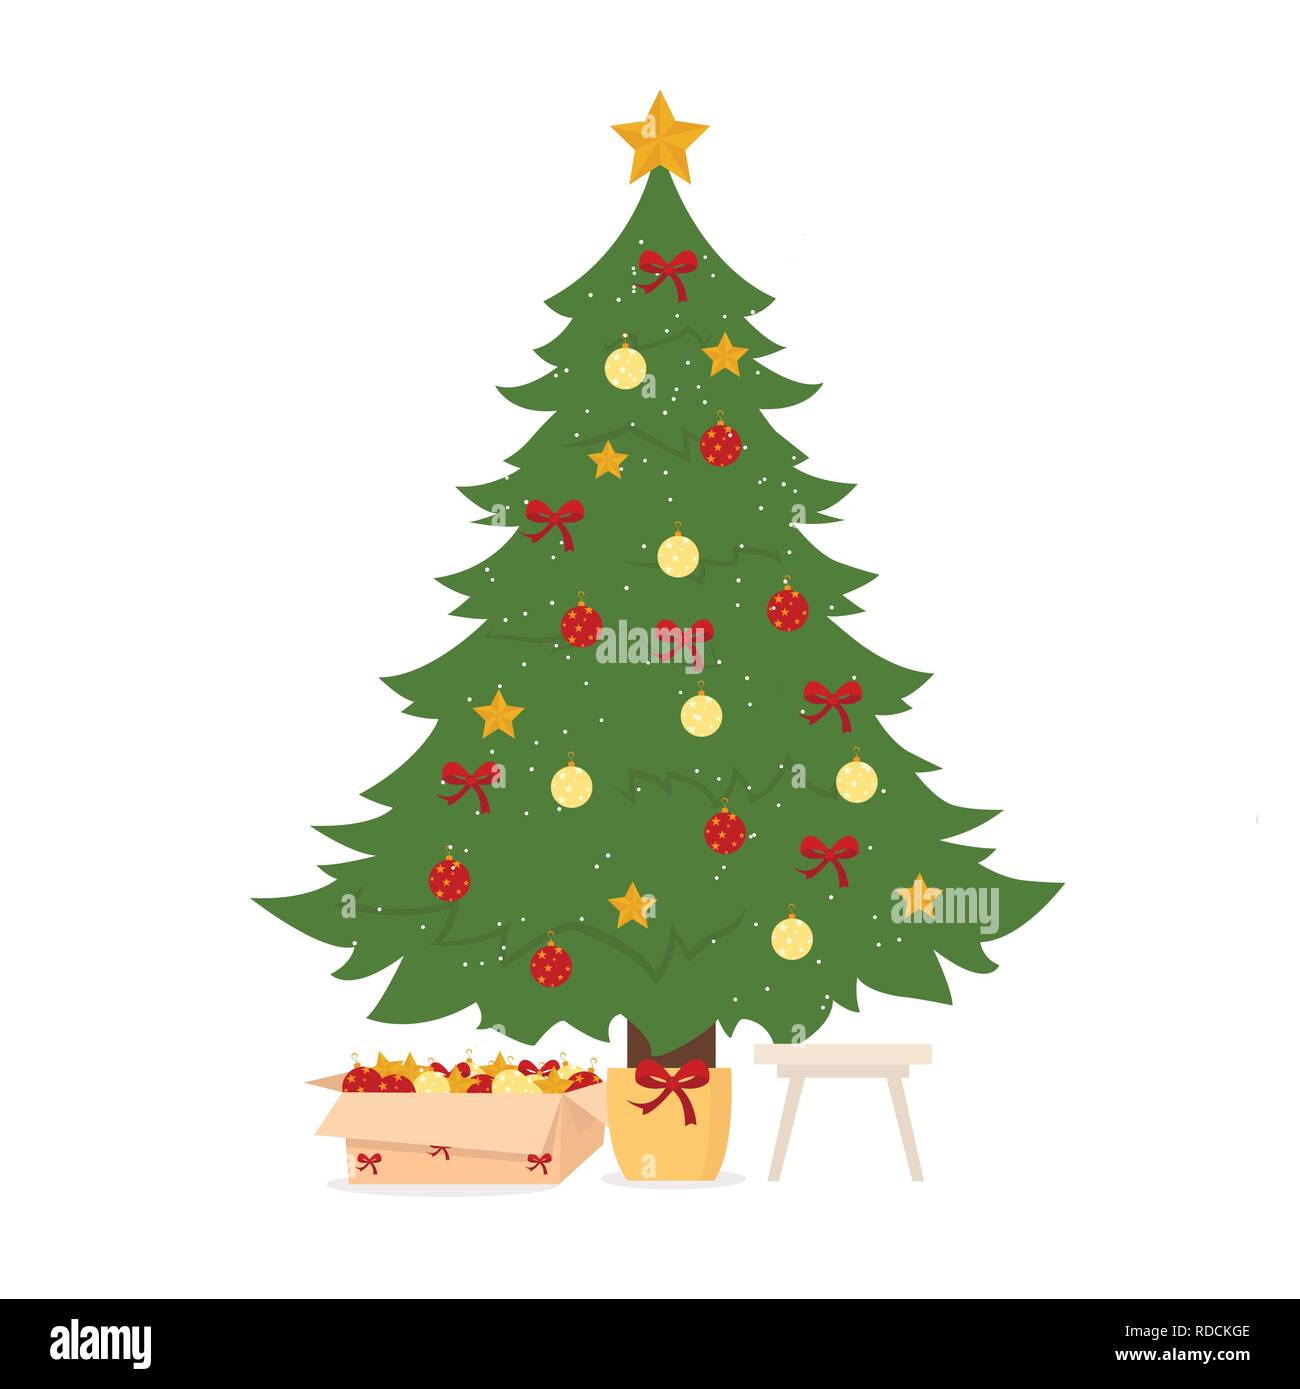 Christmas Tree Decorated On White Background For Graphic And Web Design Modern Simple Vector Sign Internet Concept Trendy Symbol For Website Design Web Button Or Mobile App Stock Vector Image Art